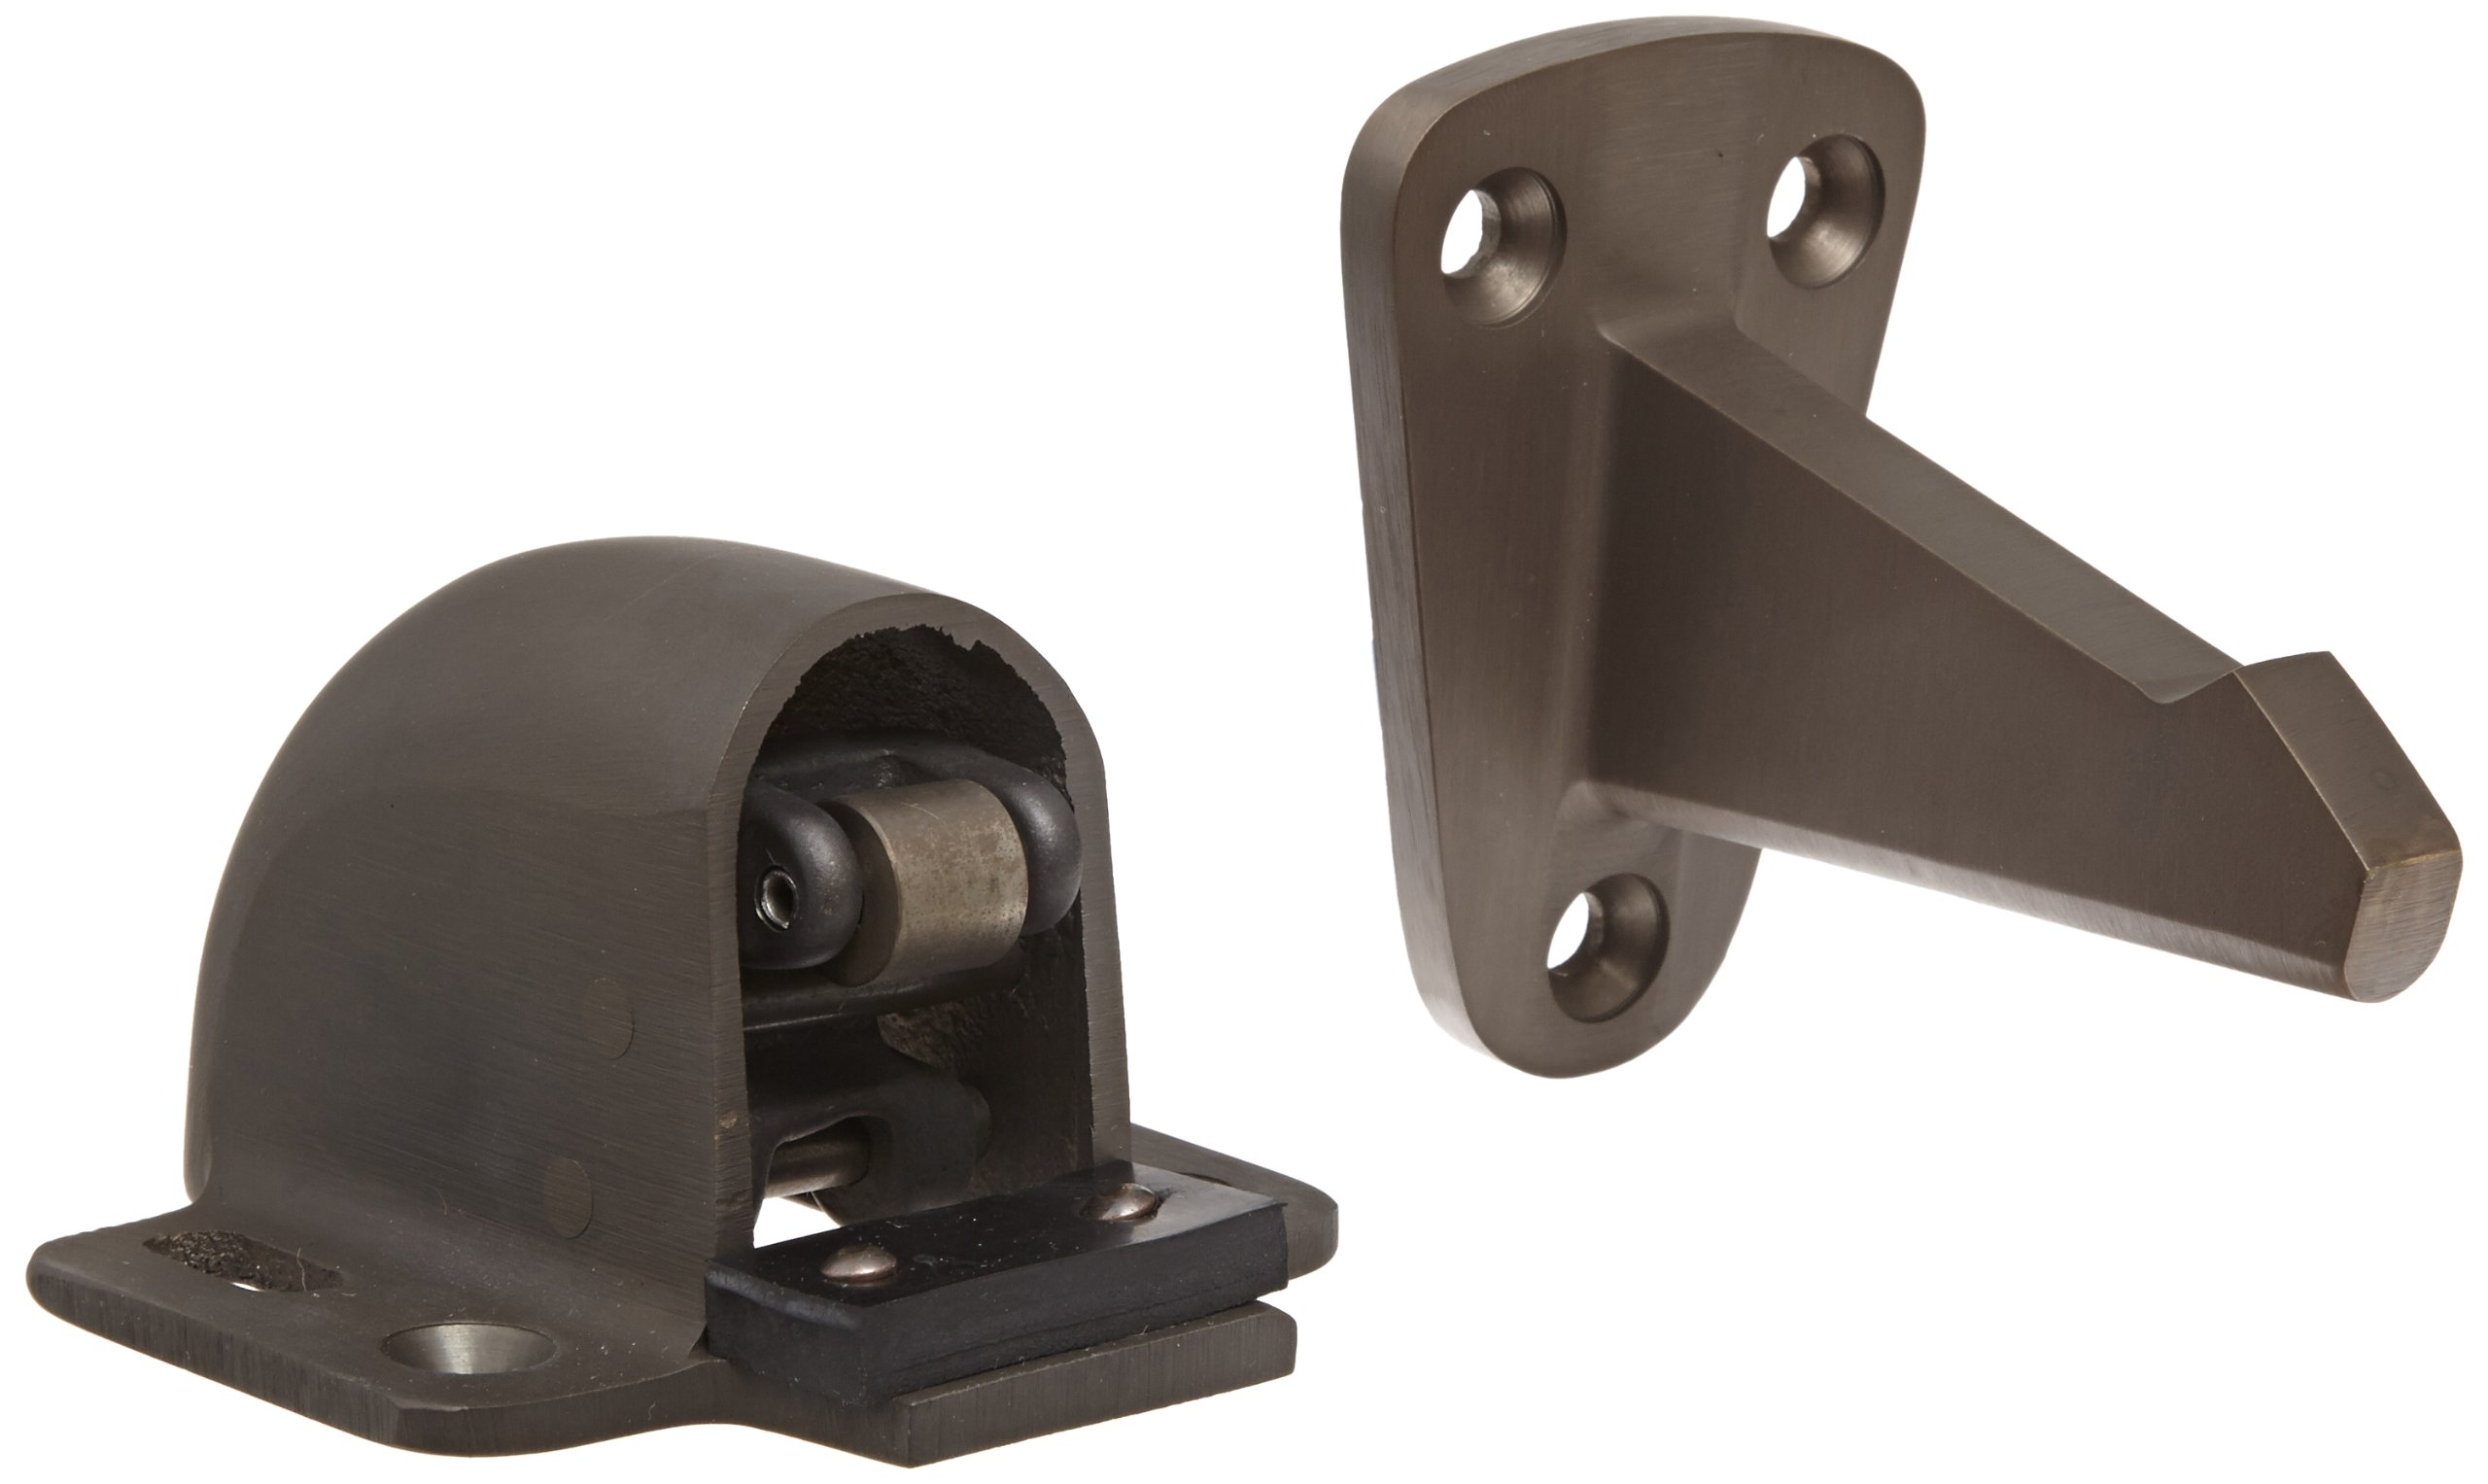 Rockwood 494.10B Bronze Wall Mount Automatic Door Holder with Stop, Satin Oxidized Oil Rubbed Finish, 3-3/4'' Wall to Door Projection, Includes Fasteners for Use with Solid Wood Doors and Drywall/Plaster Walls